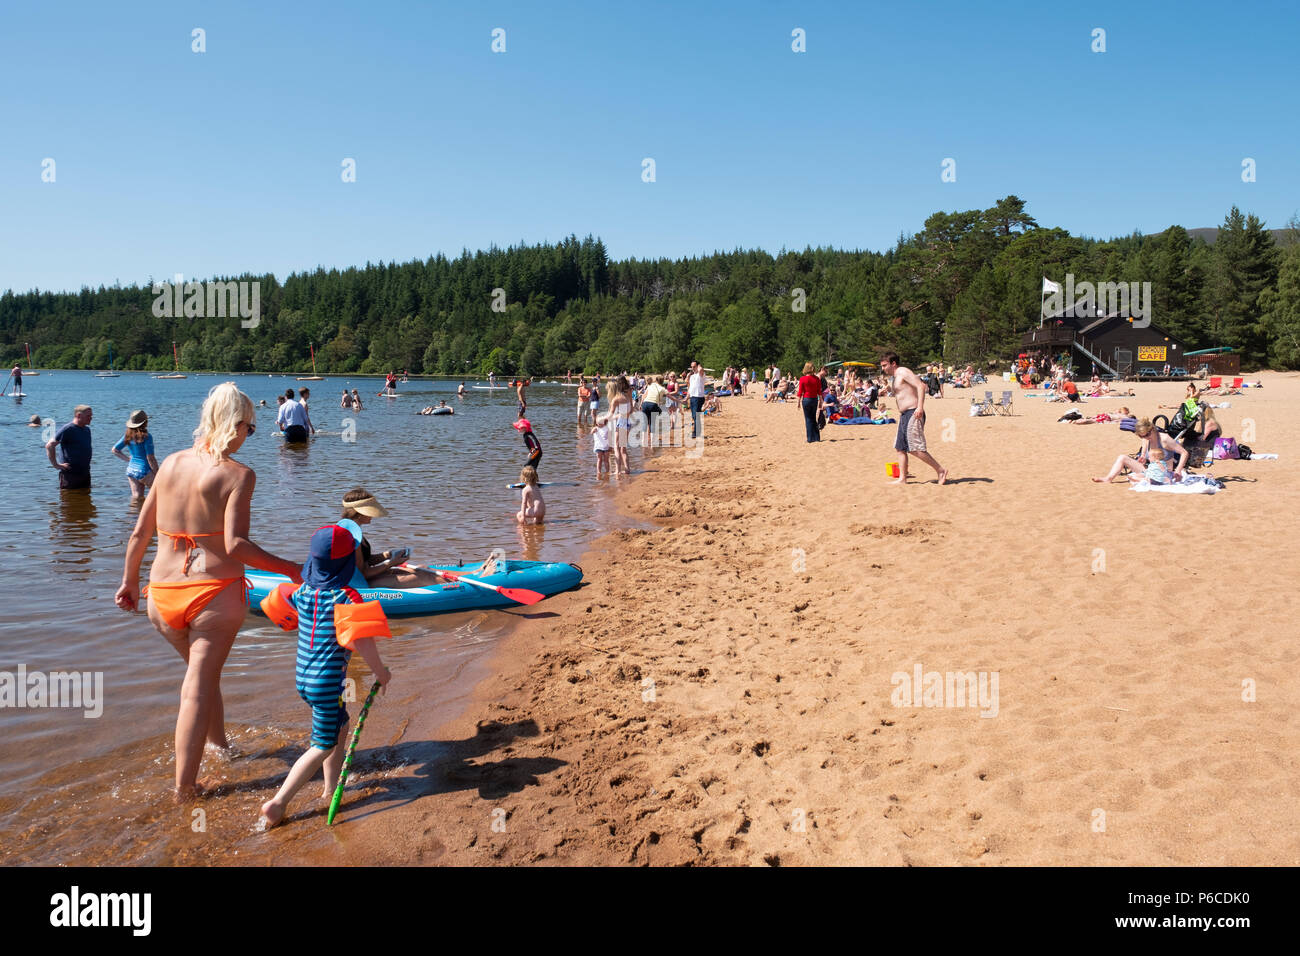 People sunbathing on beach during very hot weather in June 2018 at Loch Morlich near Aviemore in Highland region, Scotland UK - Stock Image